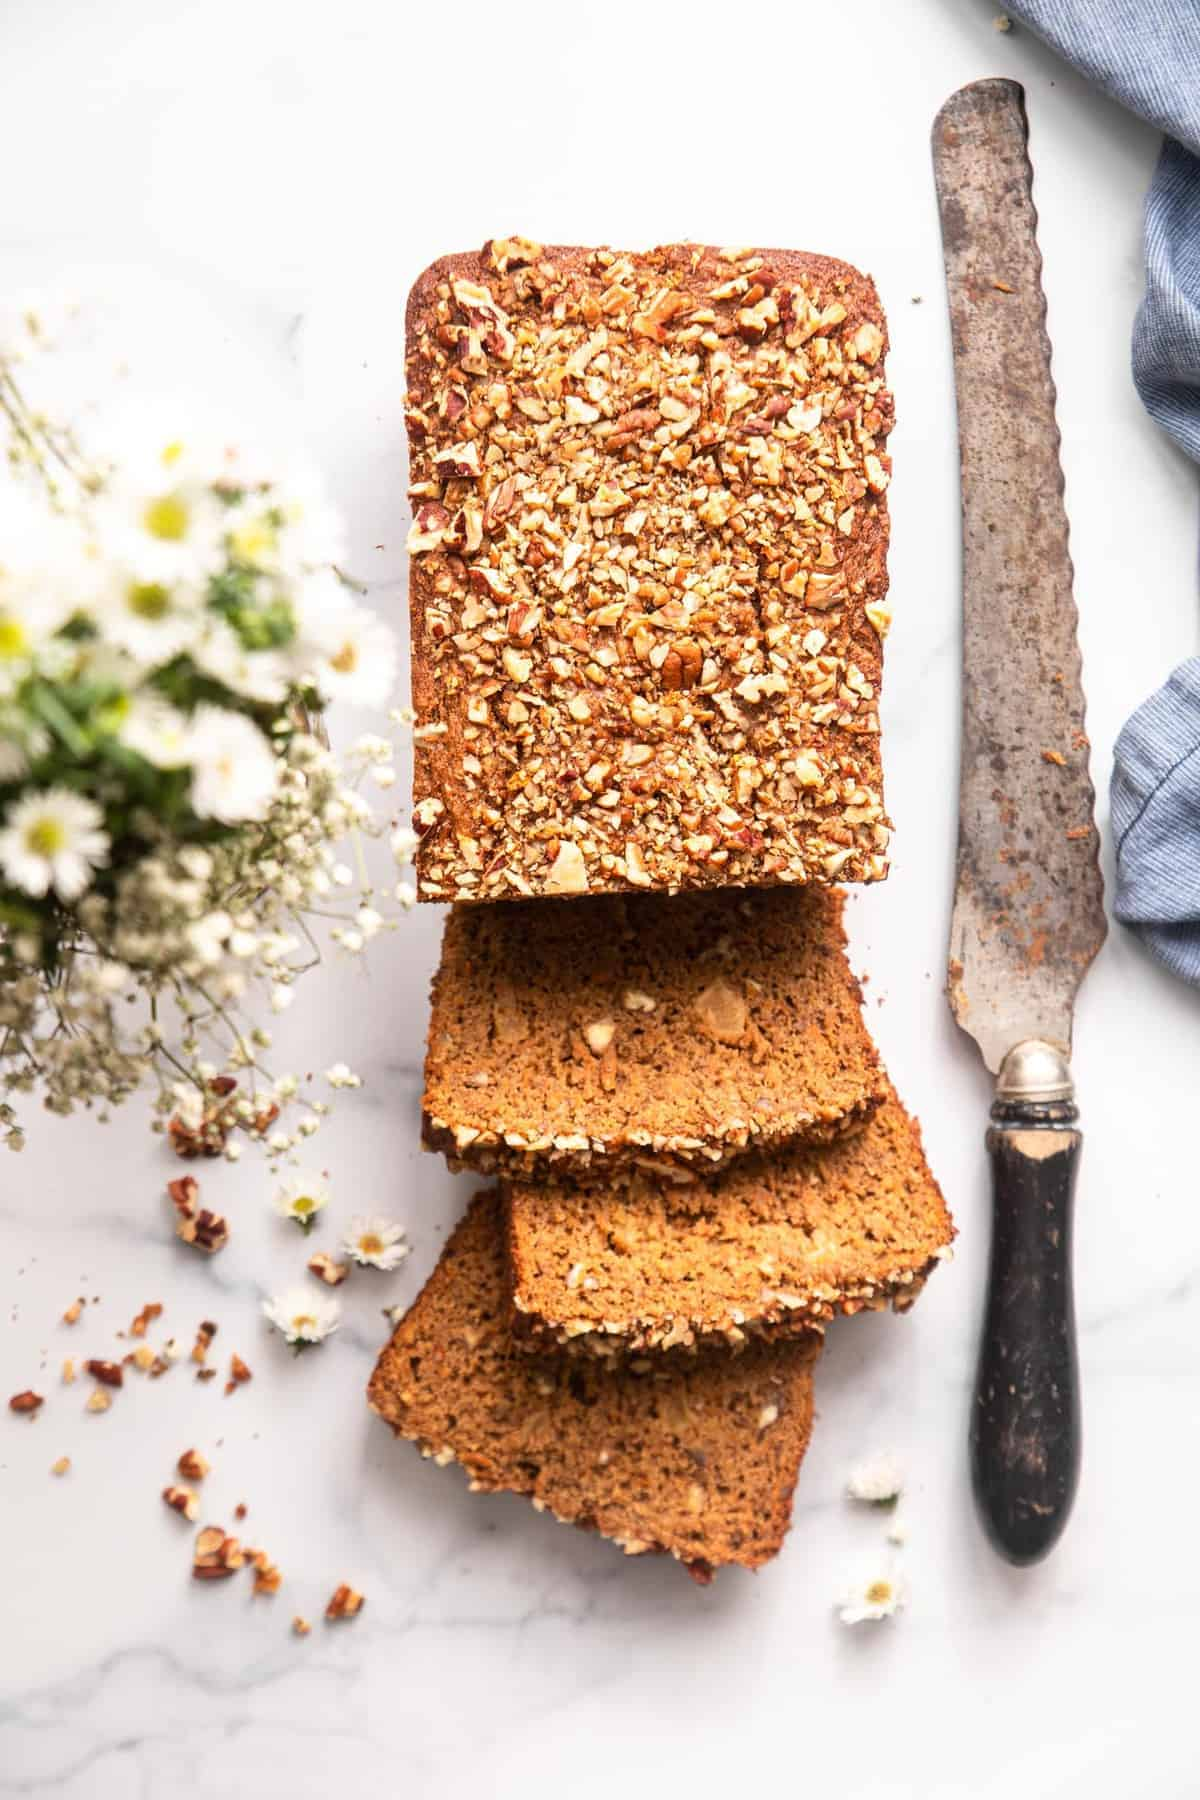 Healthy Carrot Bread sliced with bread knife on table